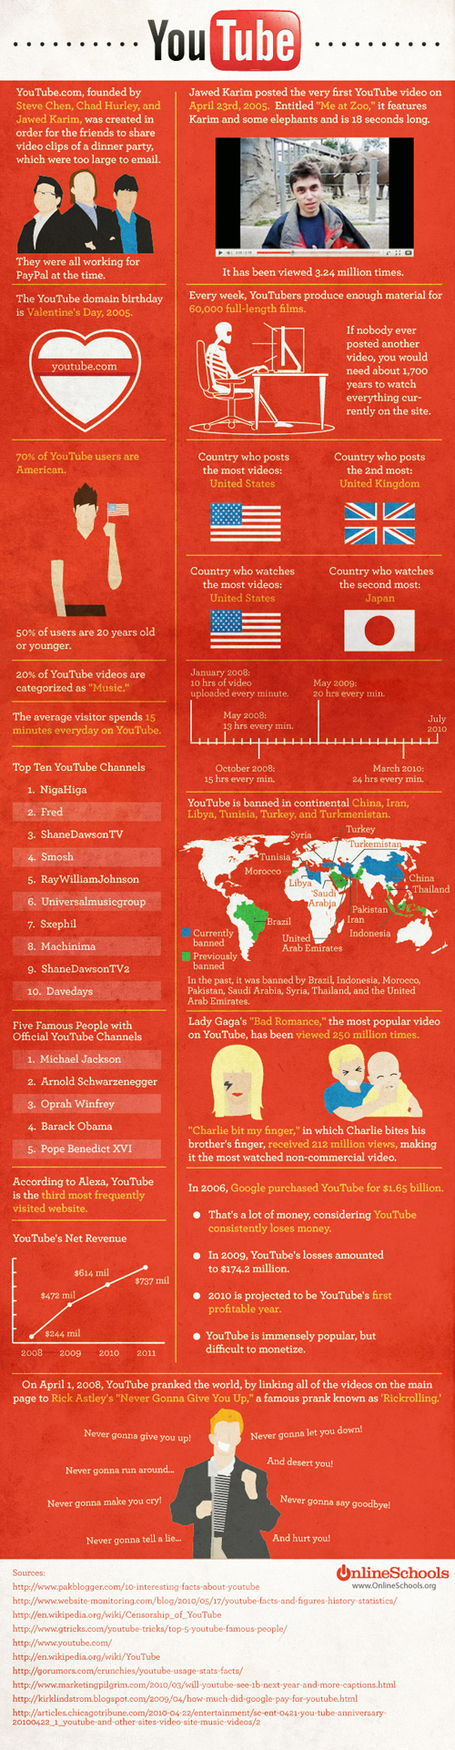 INFOGRAPHIC: YouTube's Path to World Domination | Cloud Central | Scoop.it